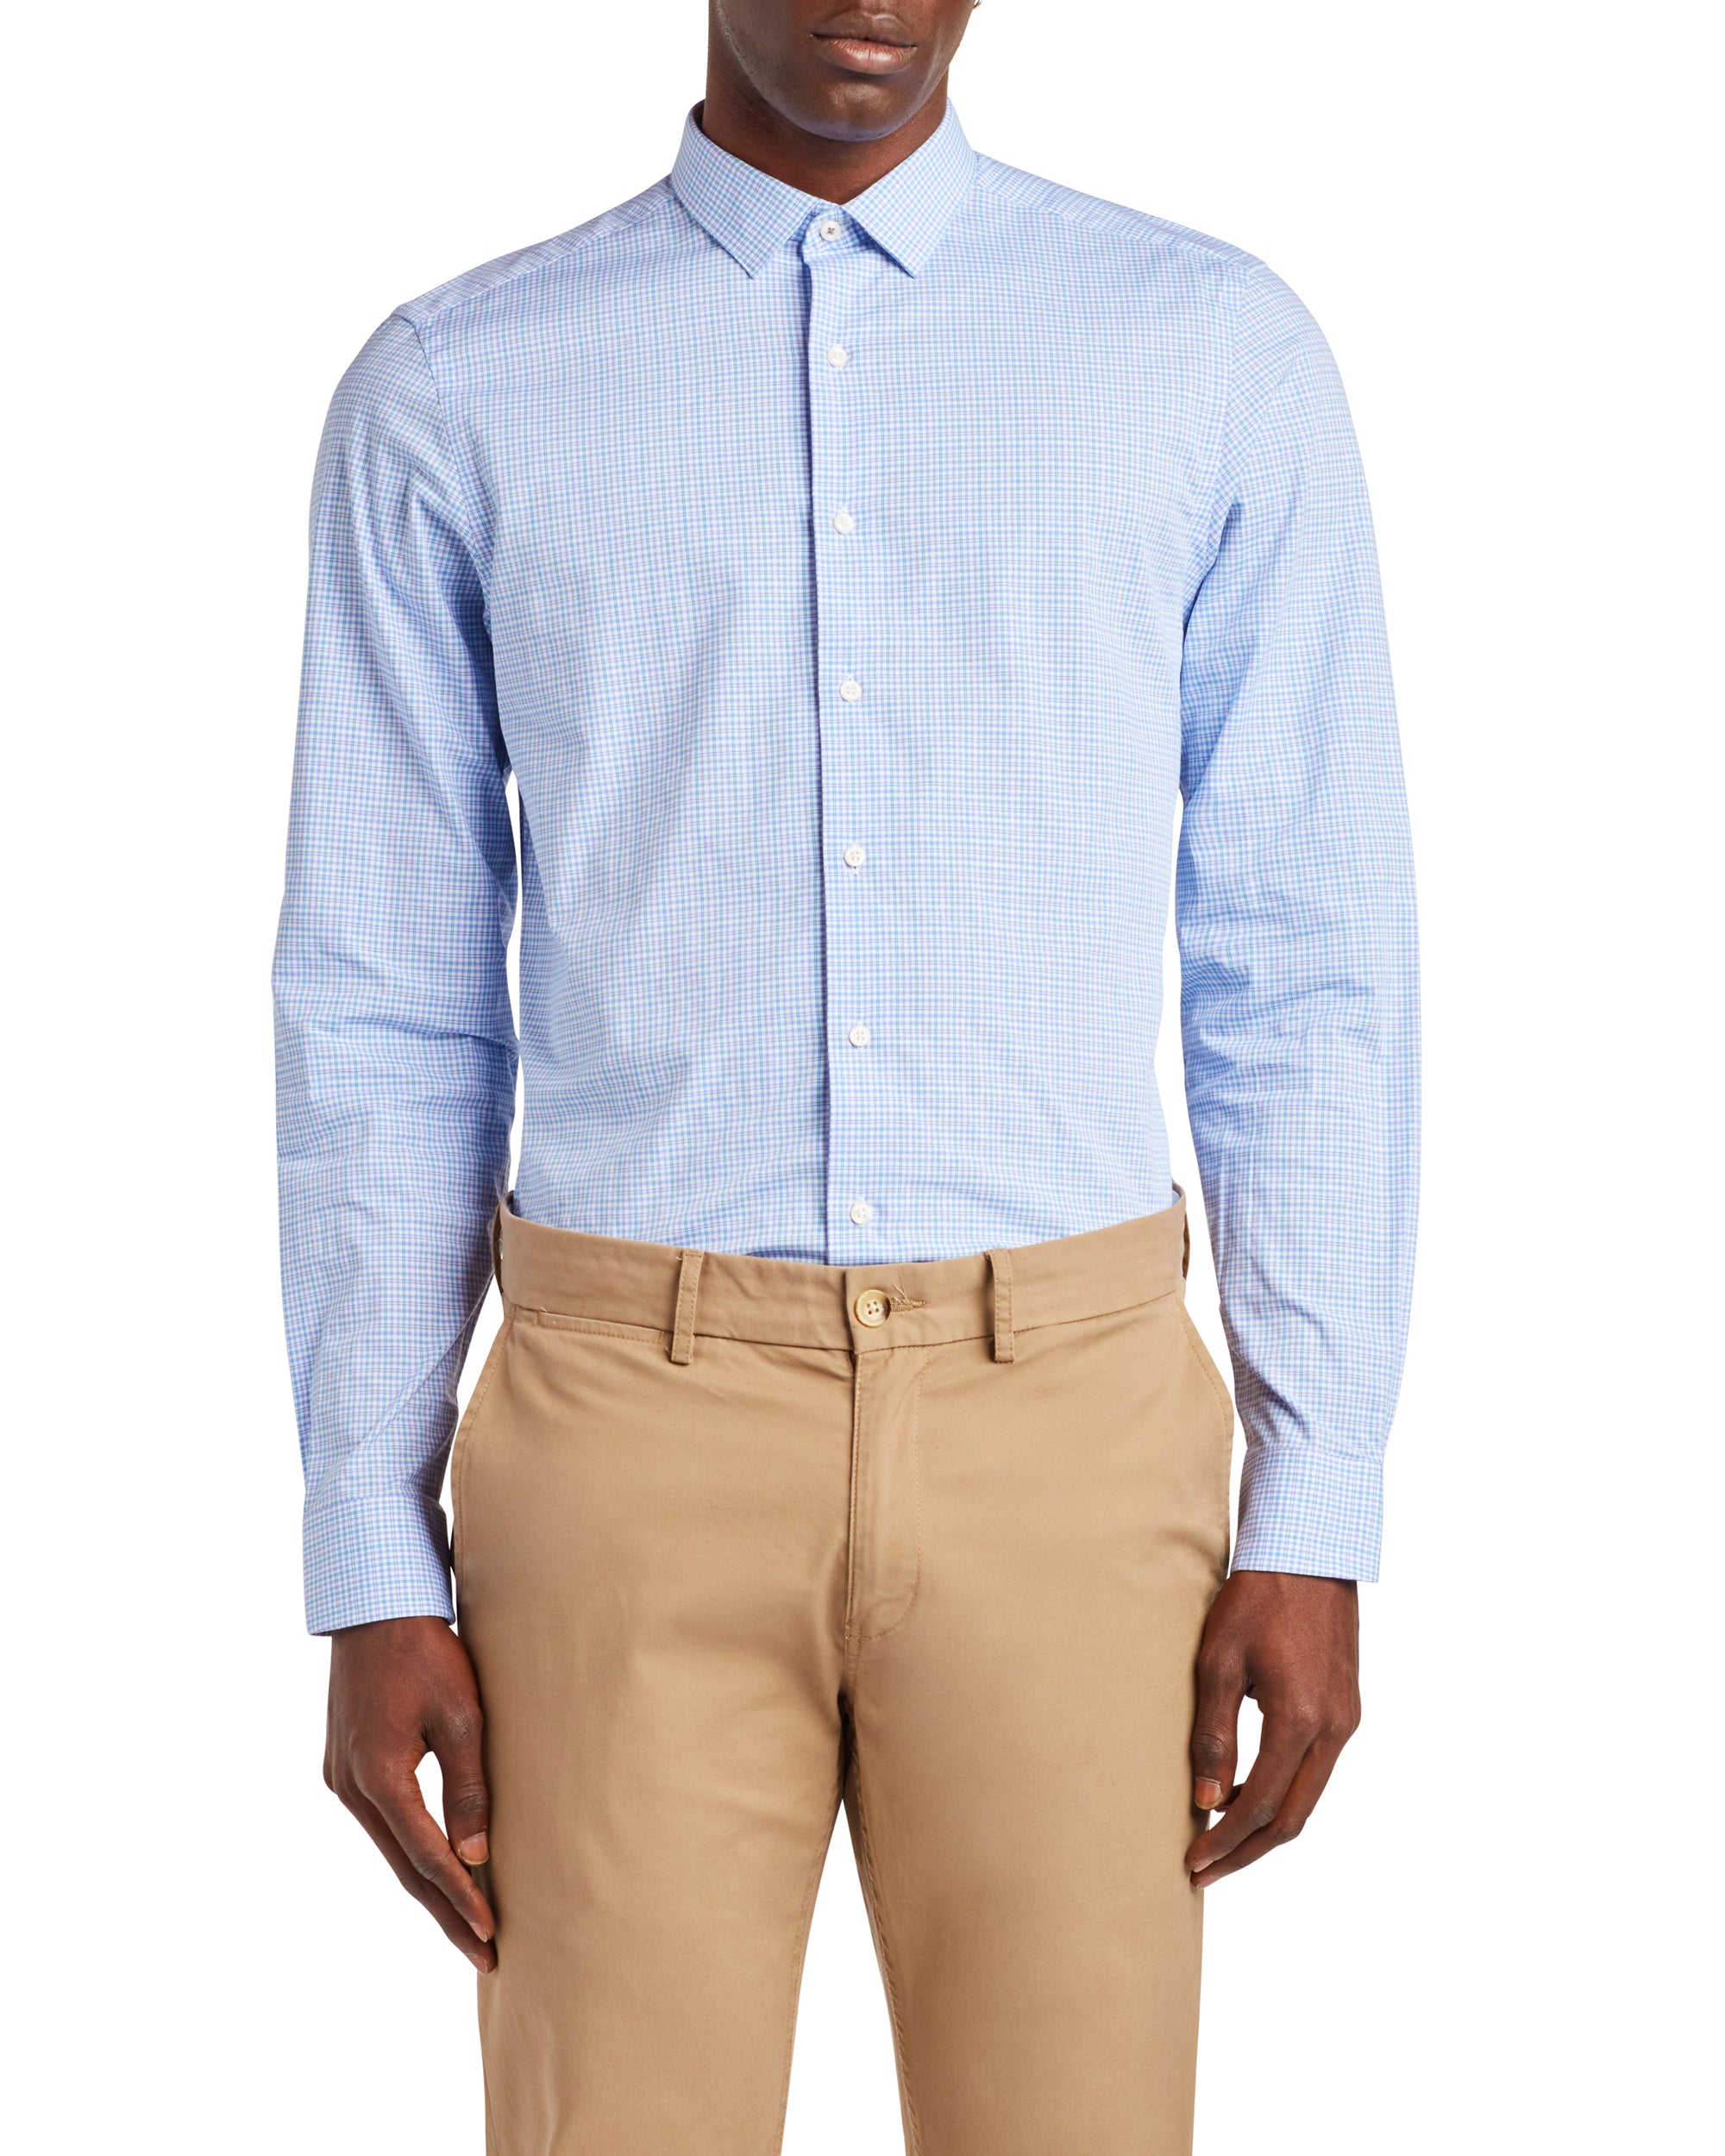 Check Skinny Fit Dress Shirt - Lavender